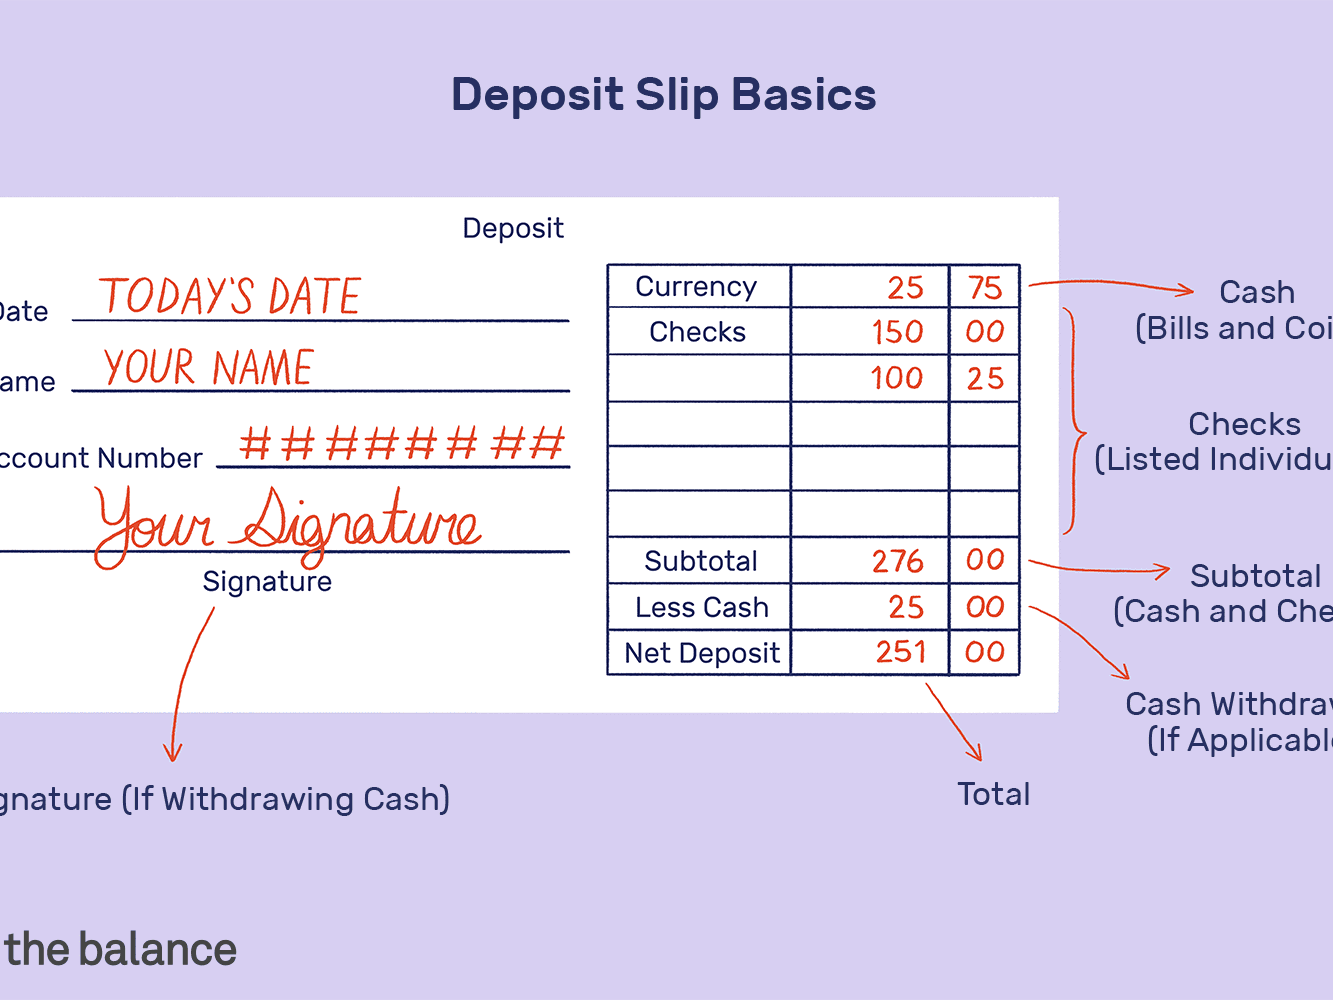 deposit form example  How to Fill Out a Deposit Slip